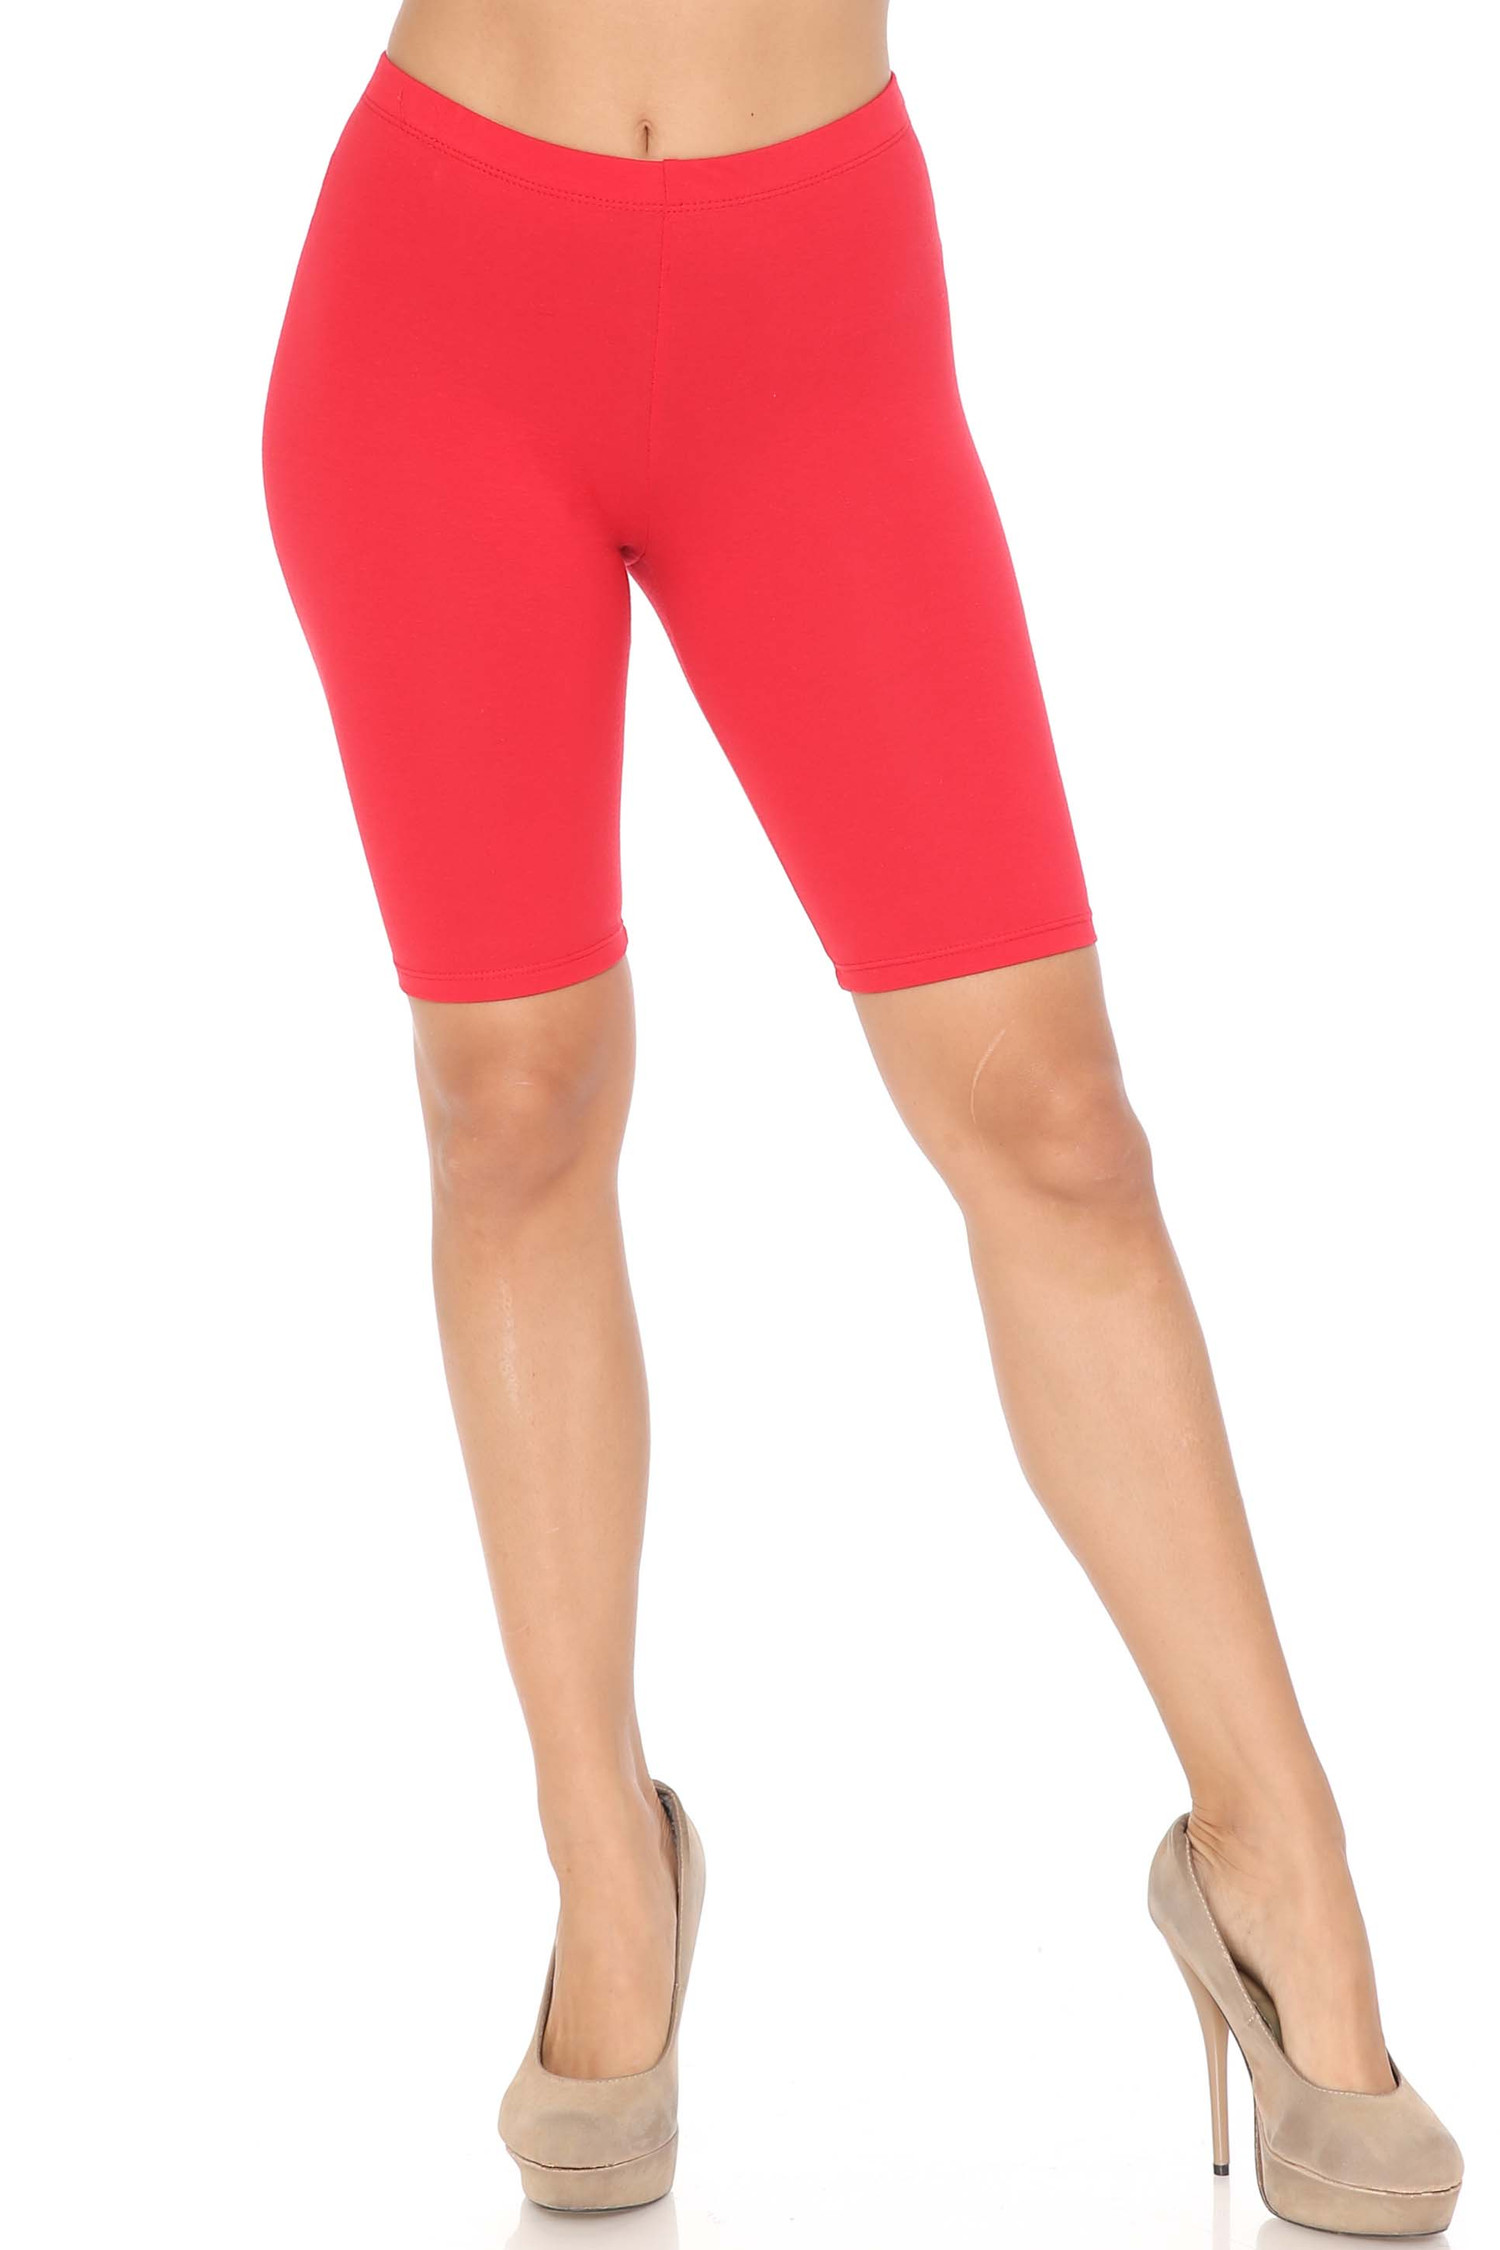 Front view of red USA Basic Cotton Thigh Shorts - Bermuda Shorts